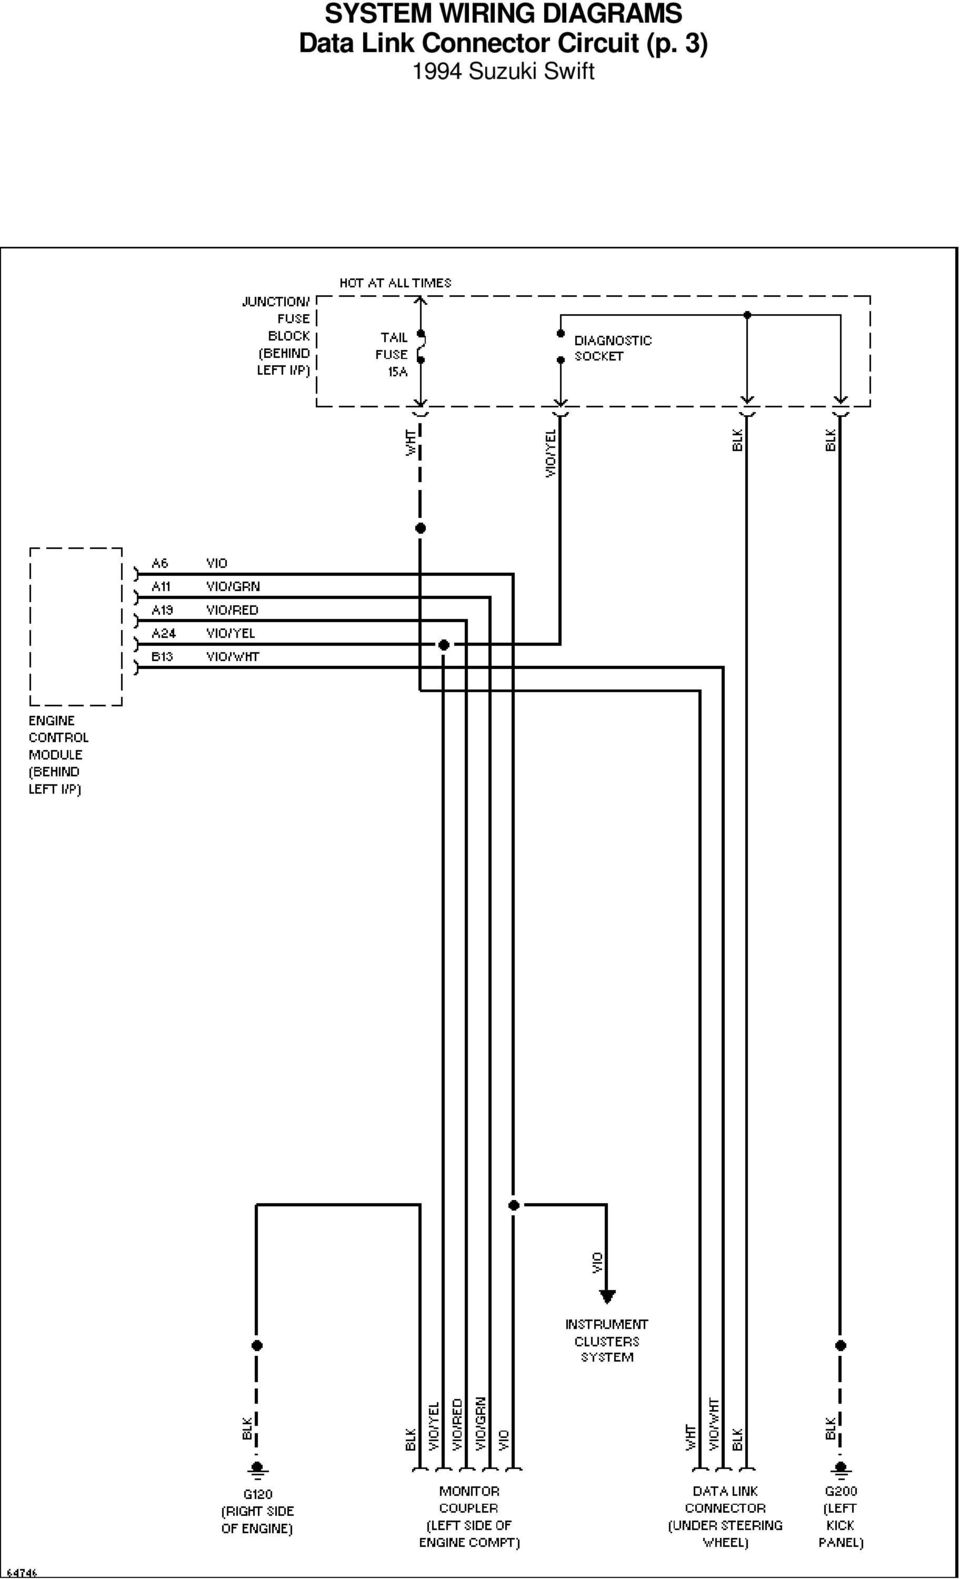 System Wiring Diagrams A C Circuit 1994 Suzuki Swift For X Copyright Jaguar Xj6 Charging Diagram